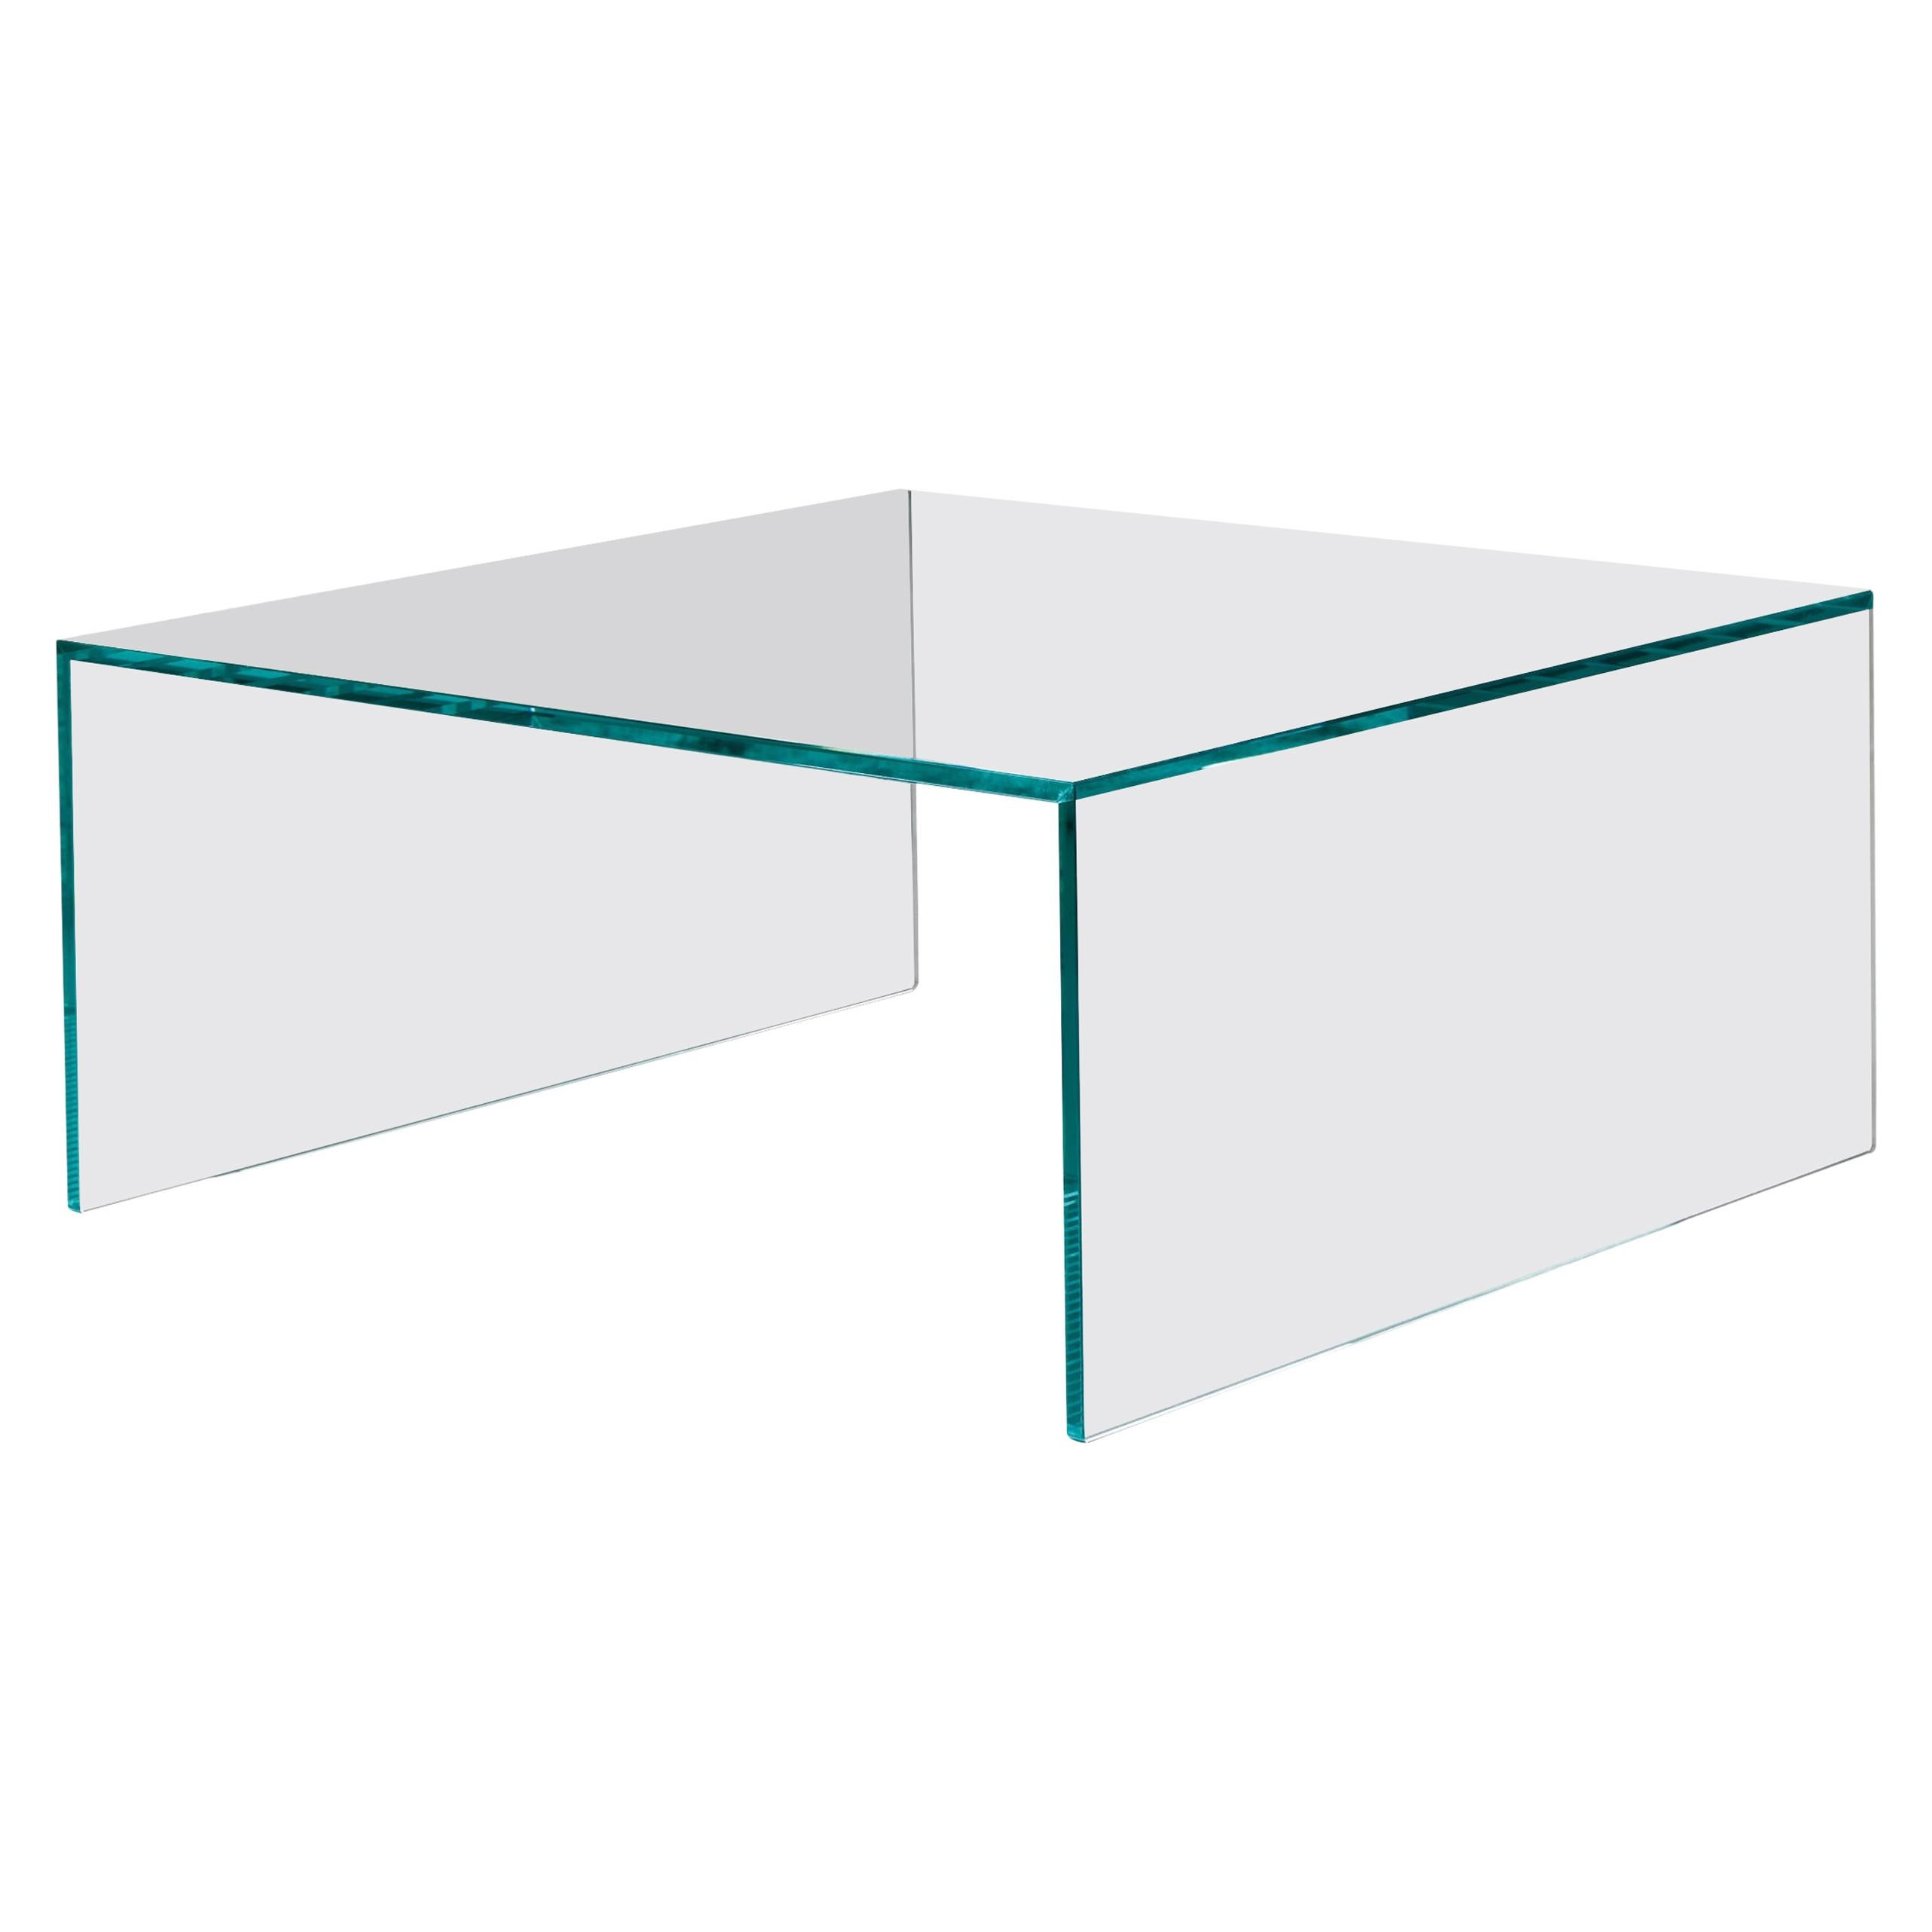 Eden Glass Coffee Table, Designed by M.U, Made in Italy